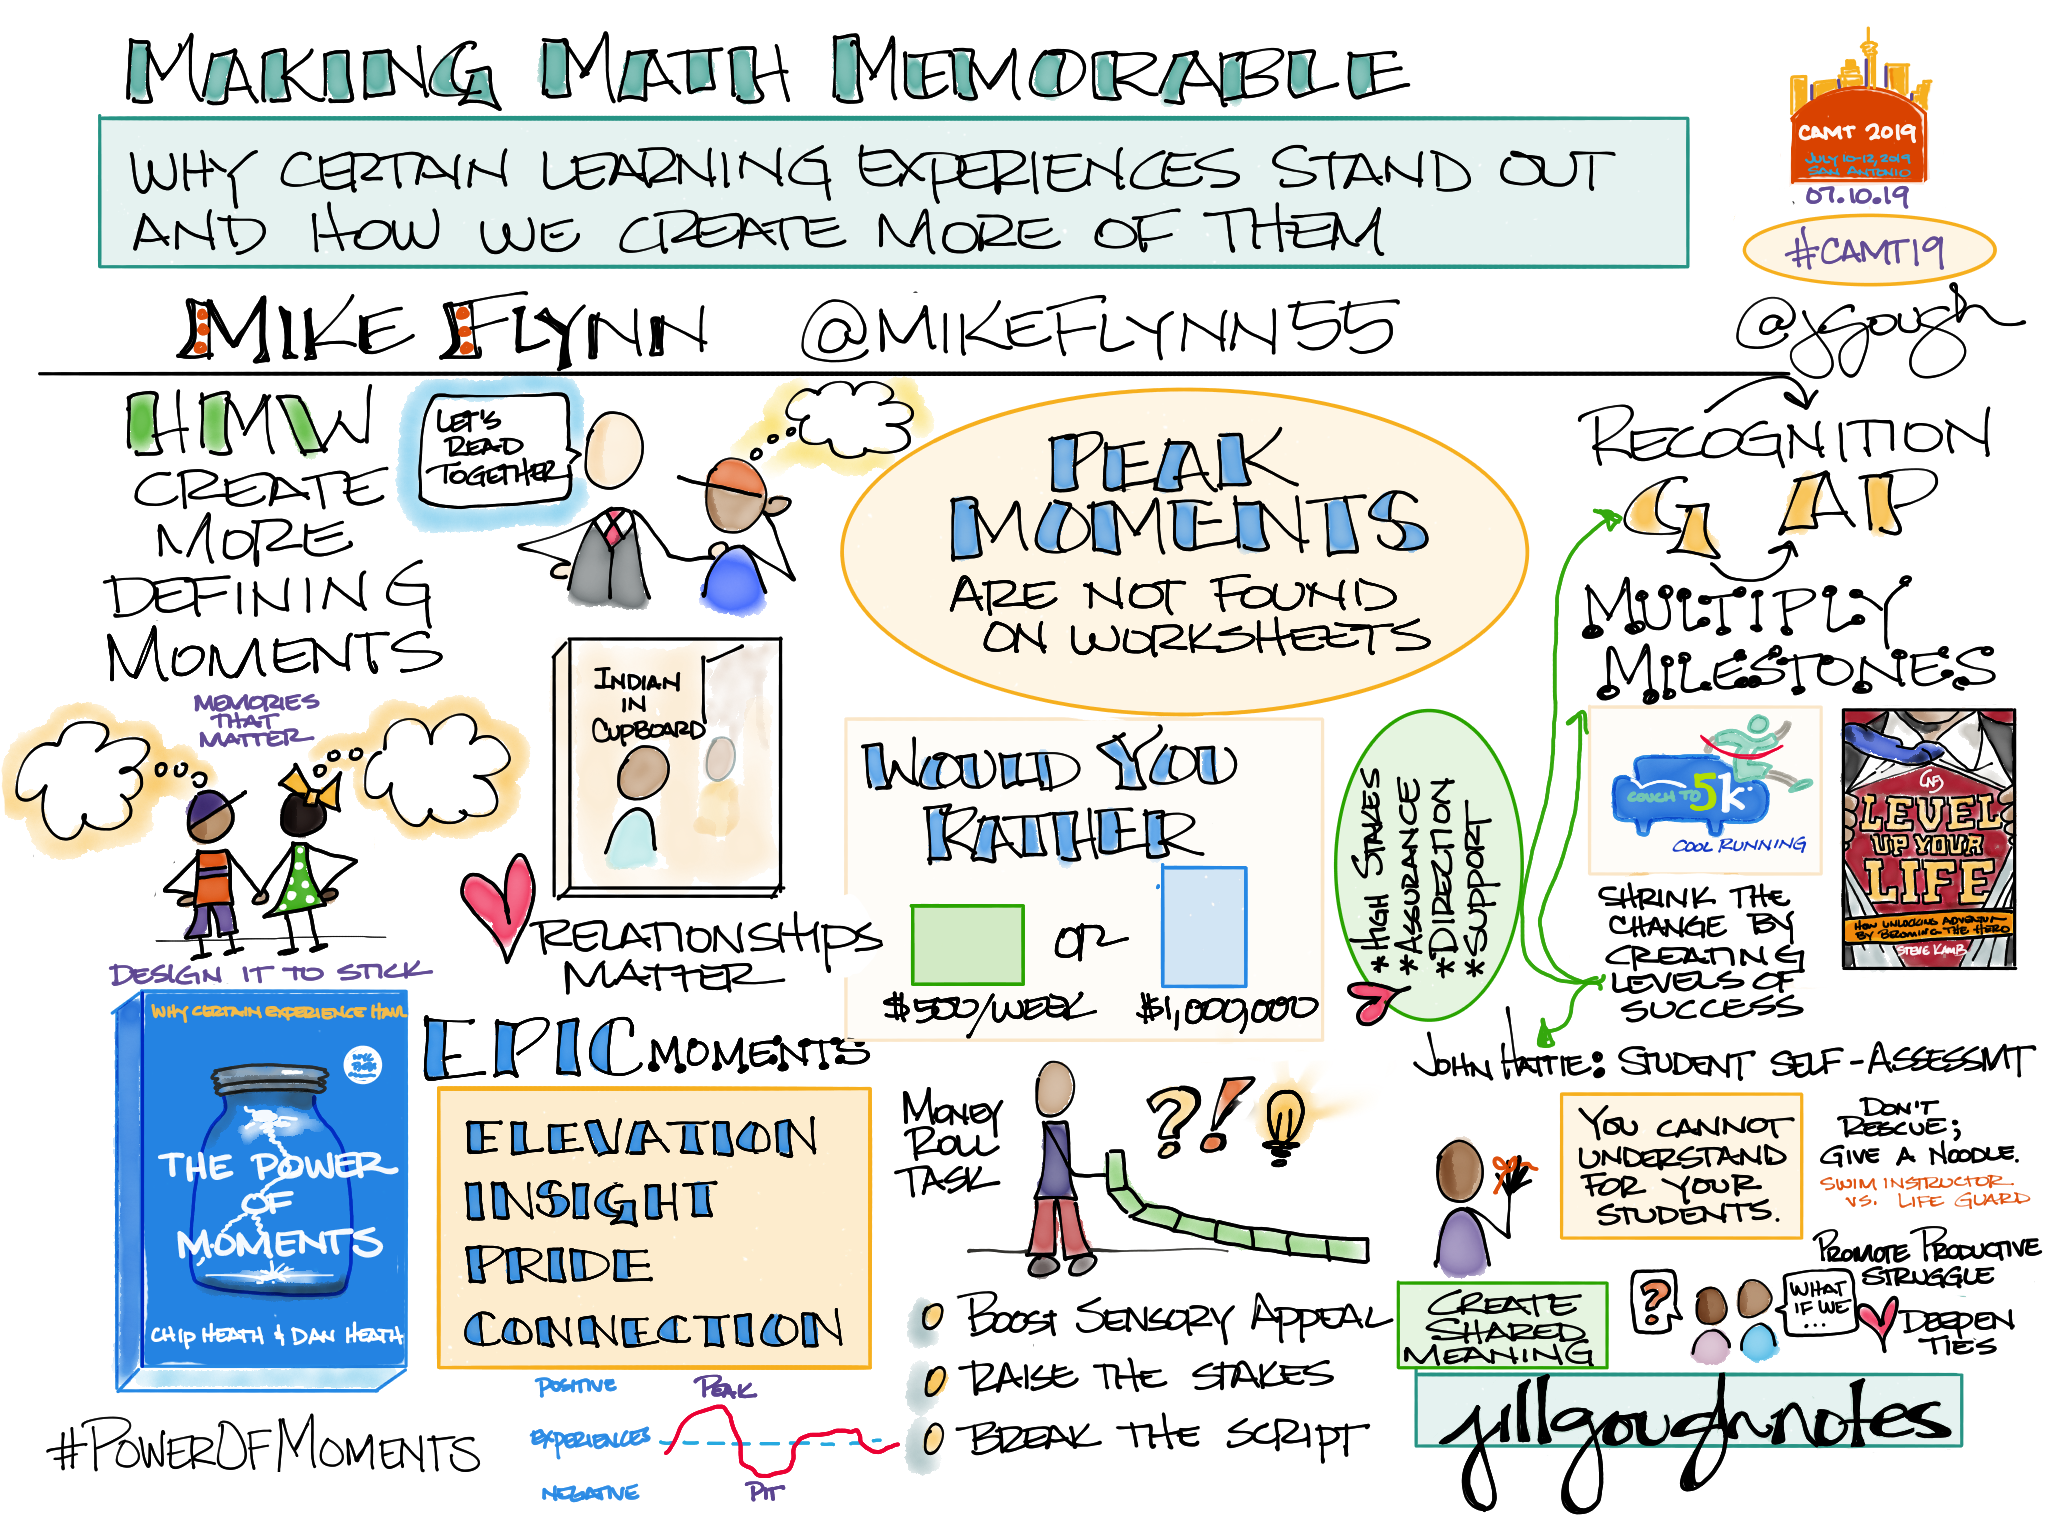 Making Math Memorable: Why certain learning experiences stand out and how we create more of them from @MikeFlynn55  #CAMT19 Keynote #PowerOfMoments HMW multiply milestone of success for every learner?